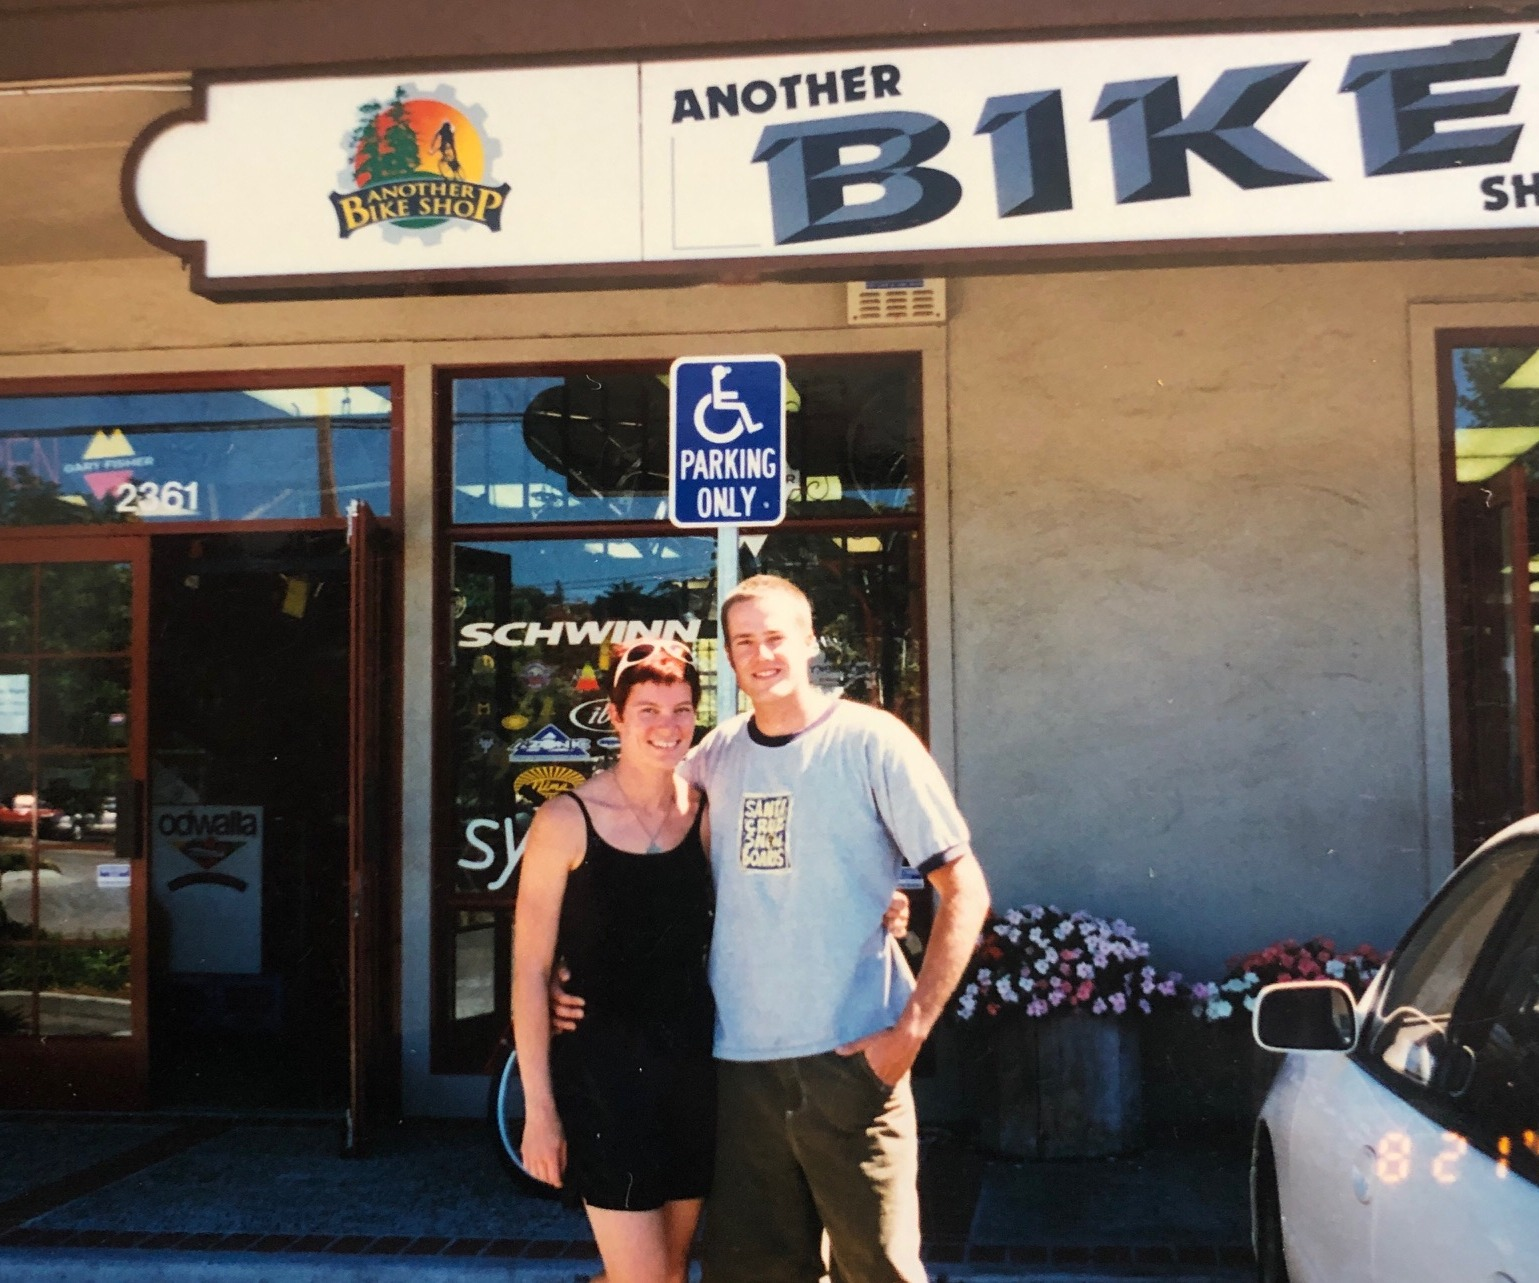 Another Bike Shop owners